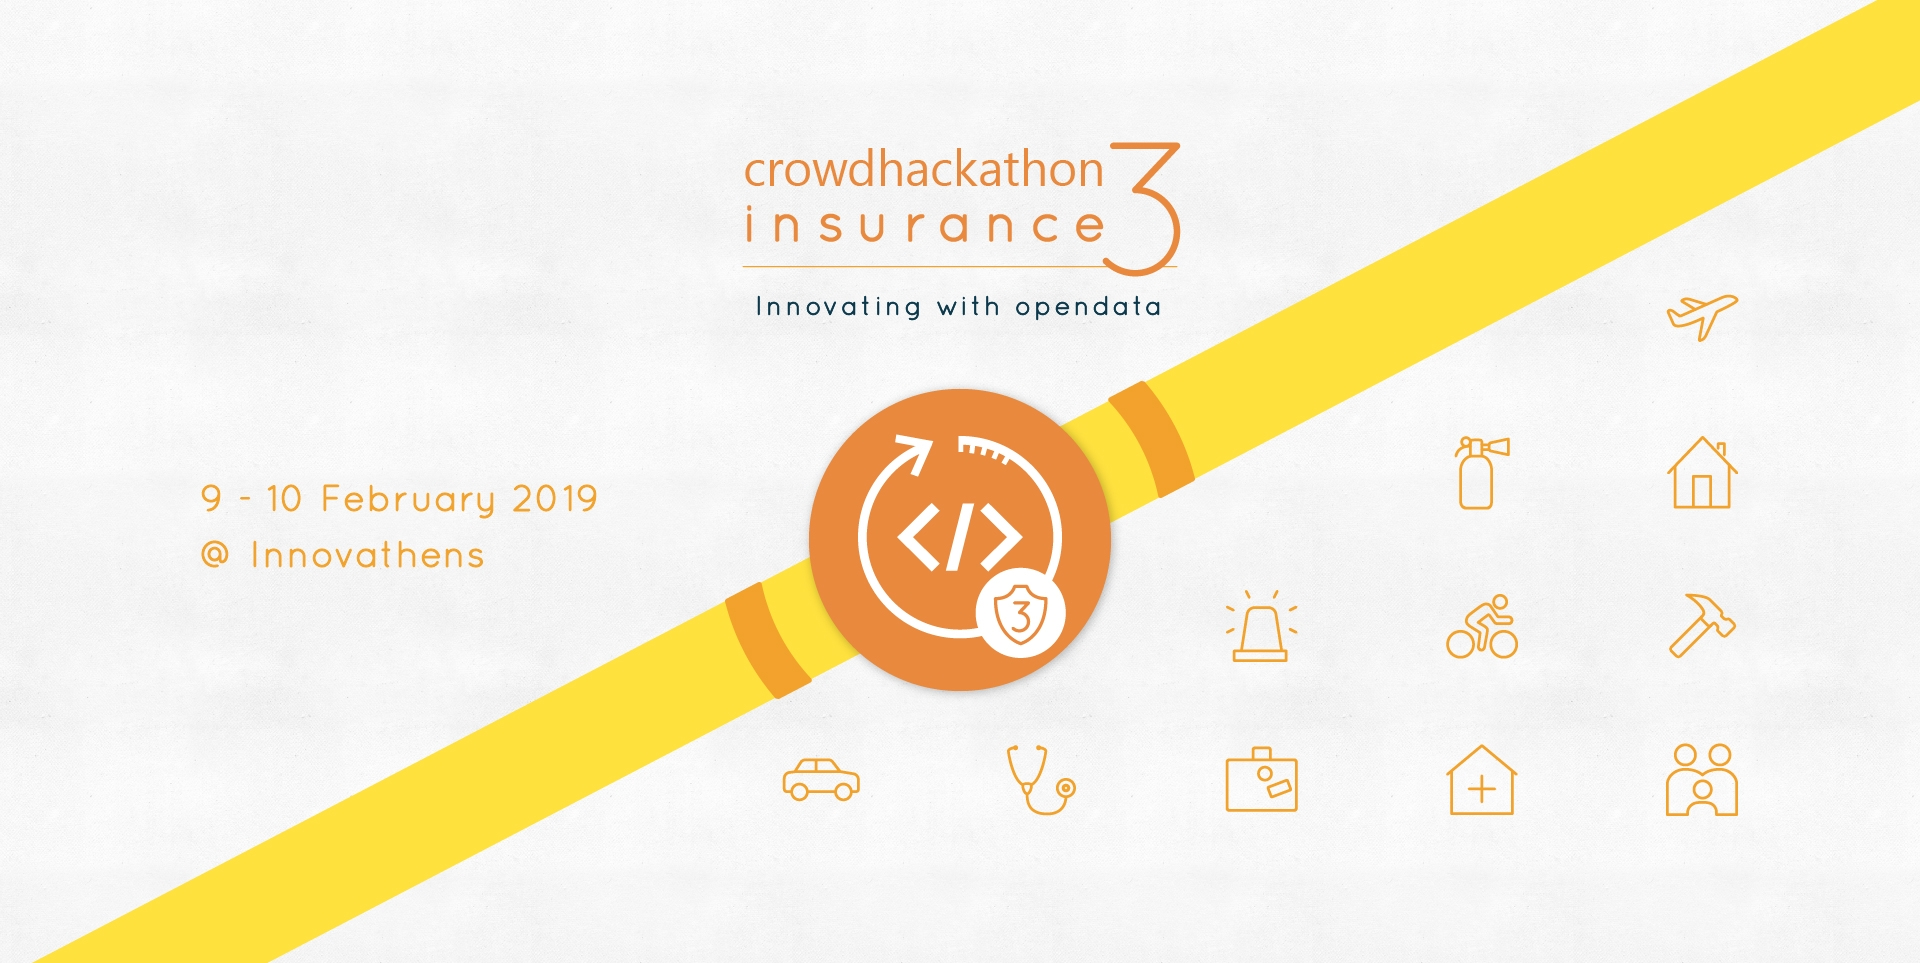 https://crowdhackathon.com/insurance3/wp-content/uploads/resized/702ba13b4d7ef2d924772e1305417468/insurance3_site_cover-1-1.jpg